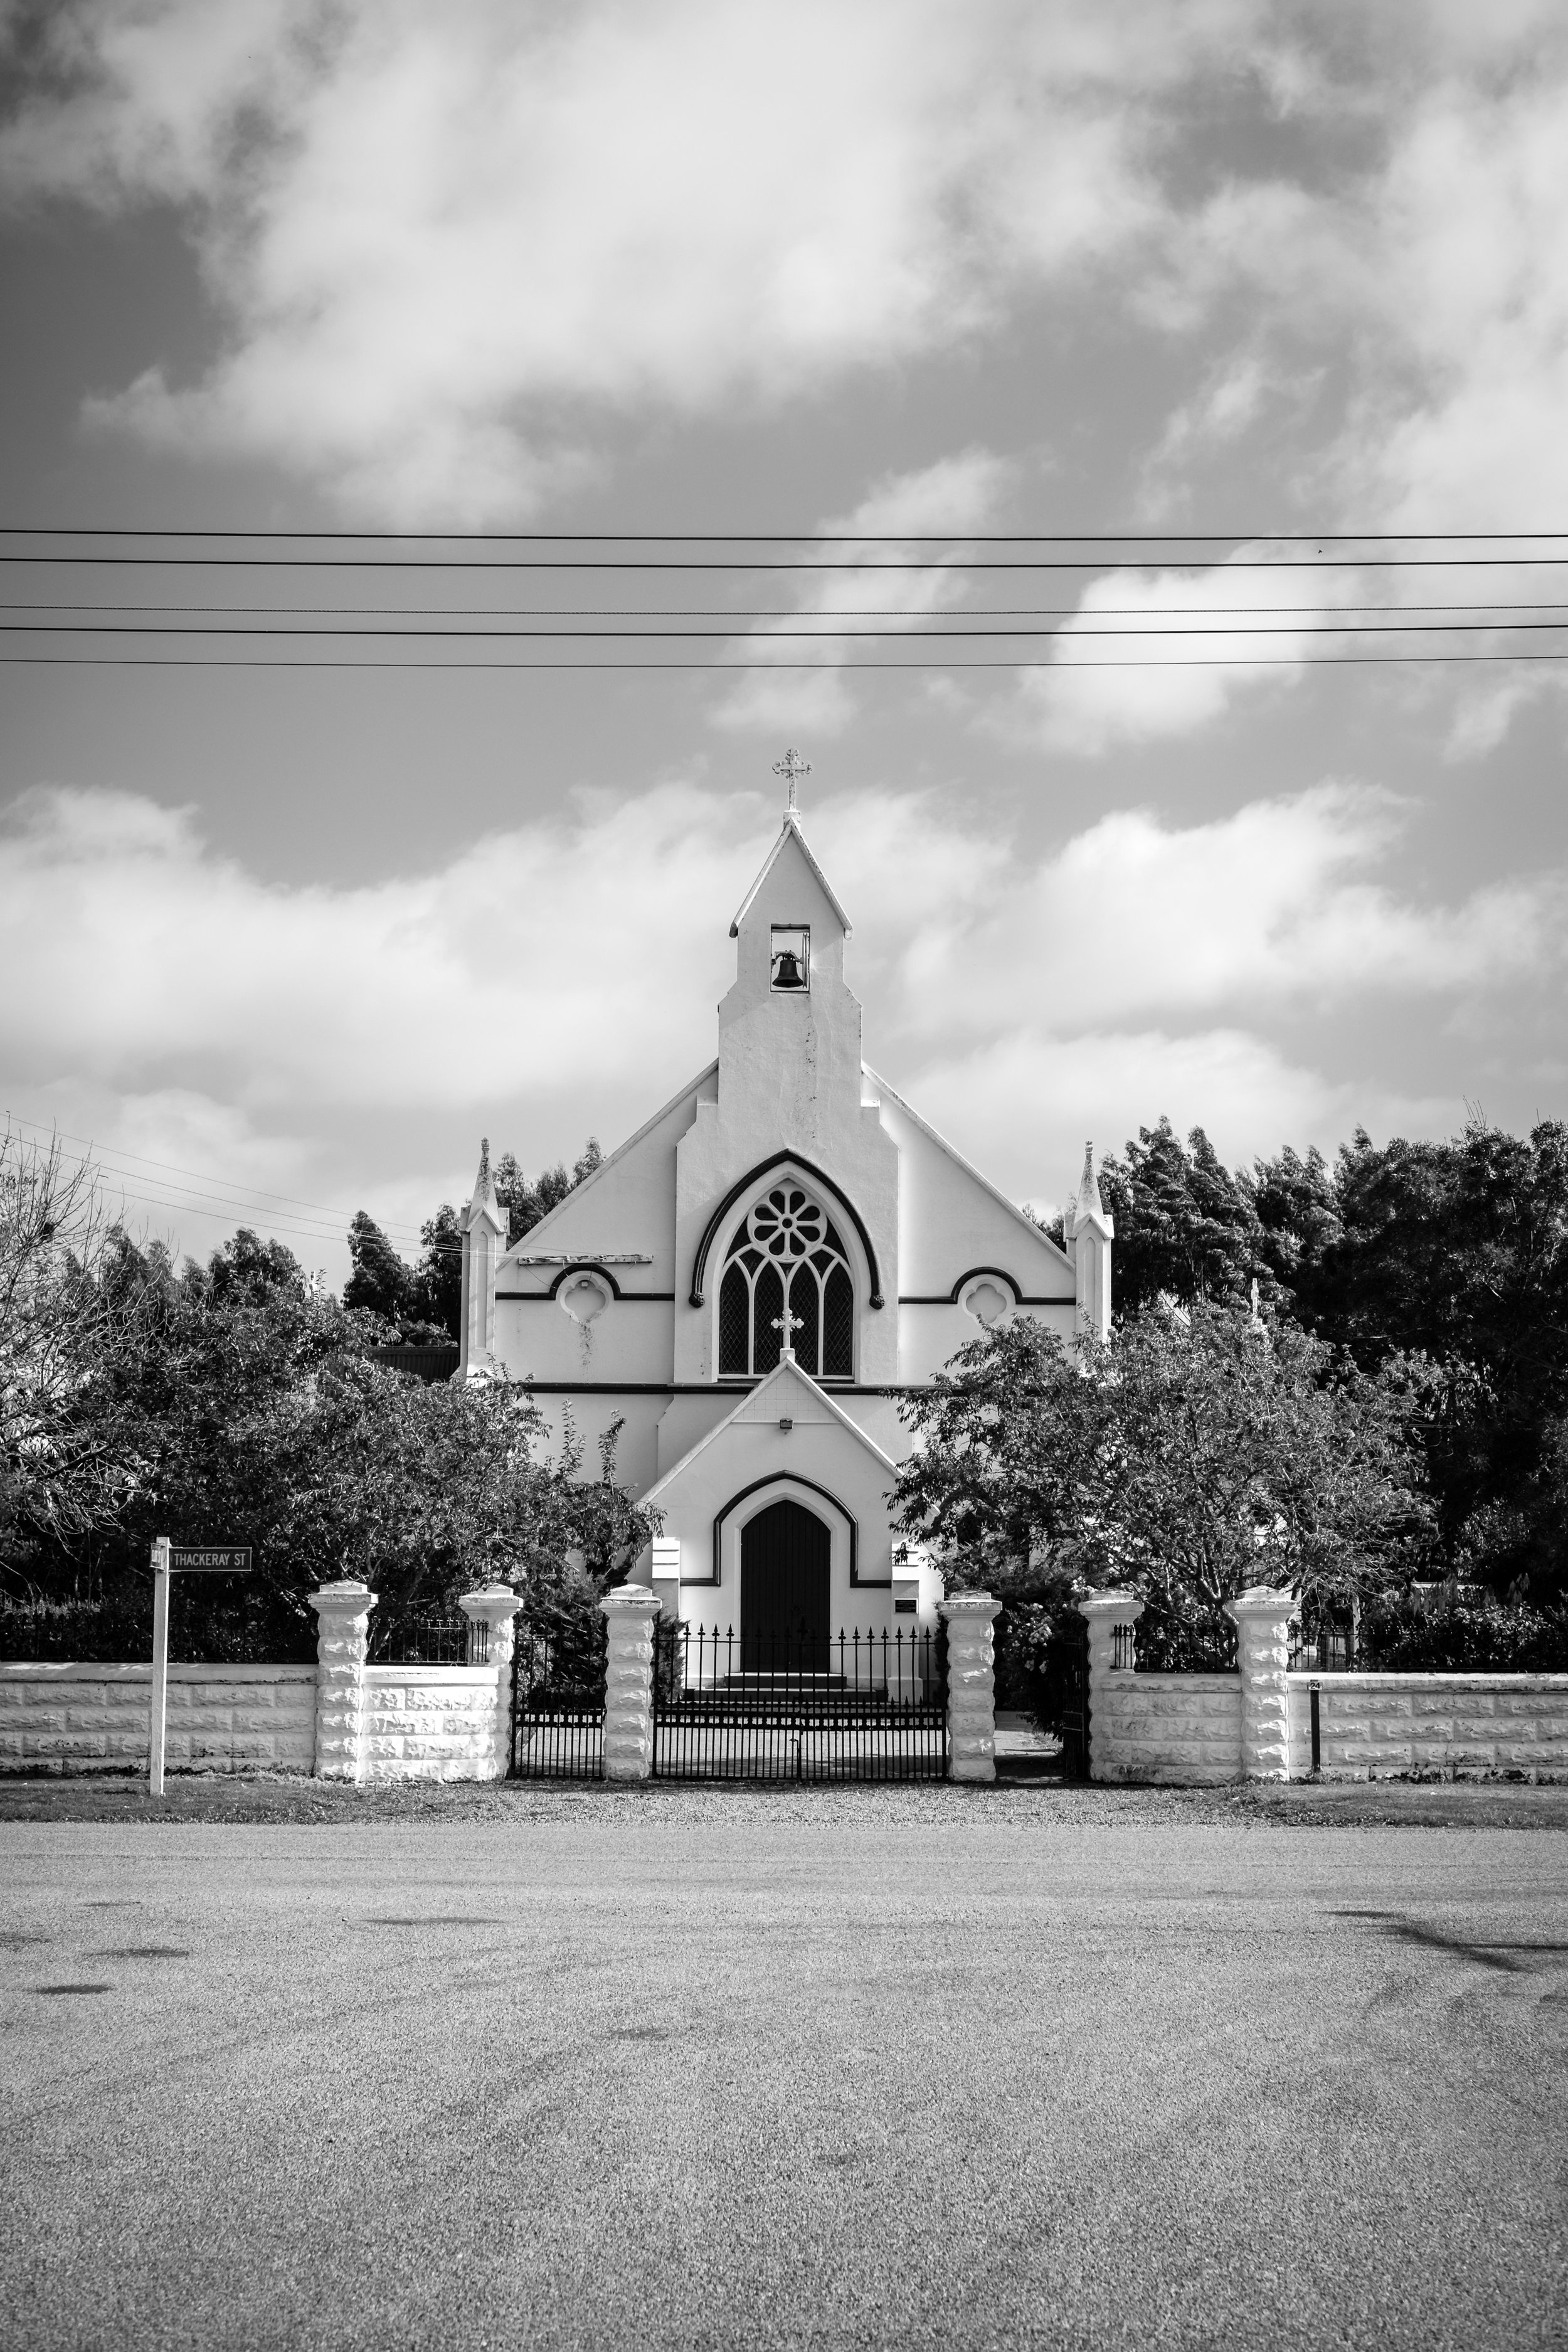 The church with no name, St Andrew's